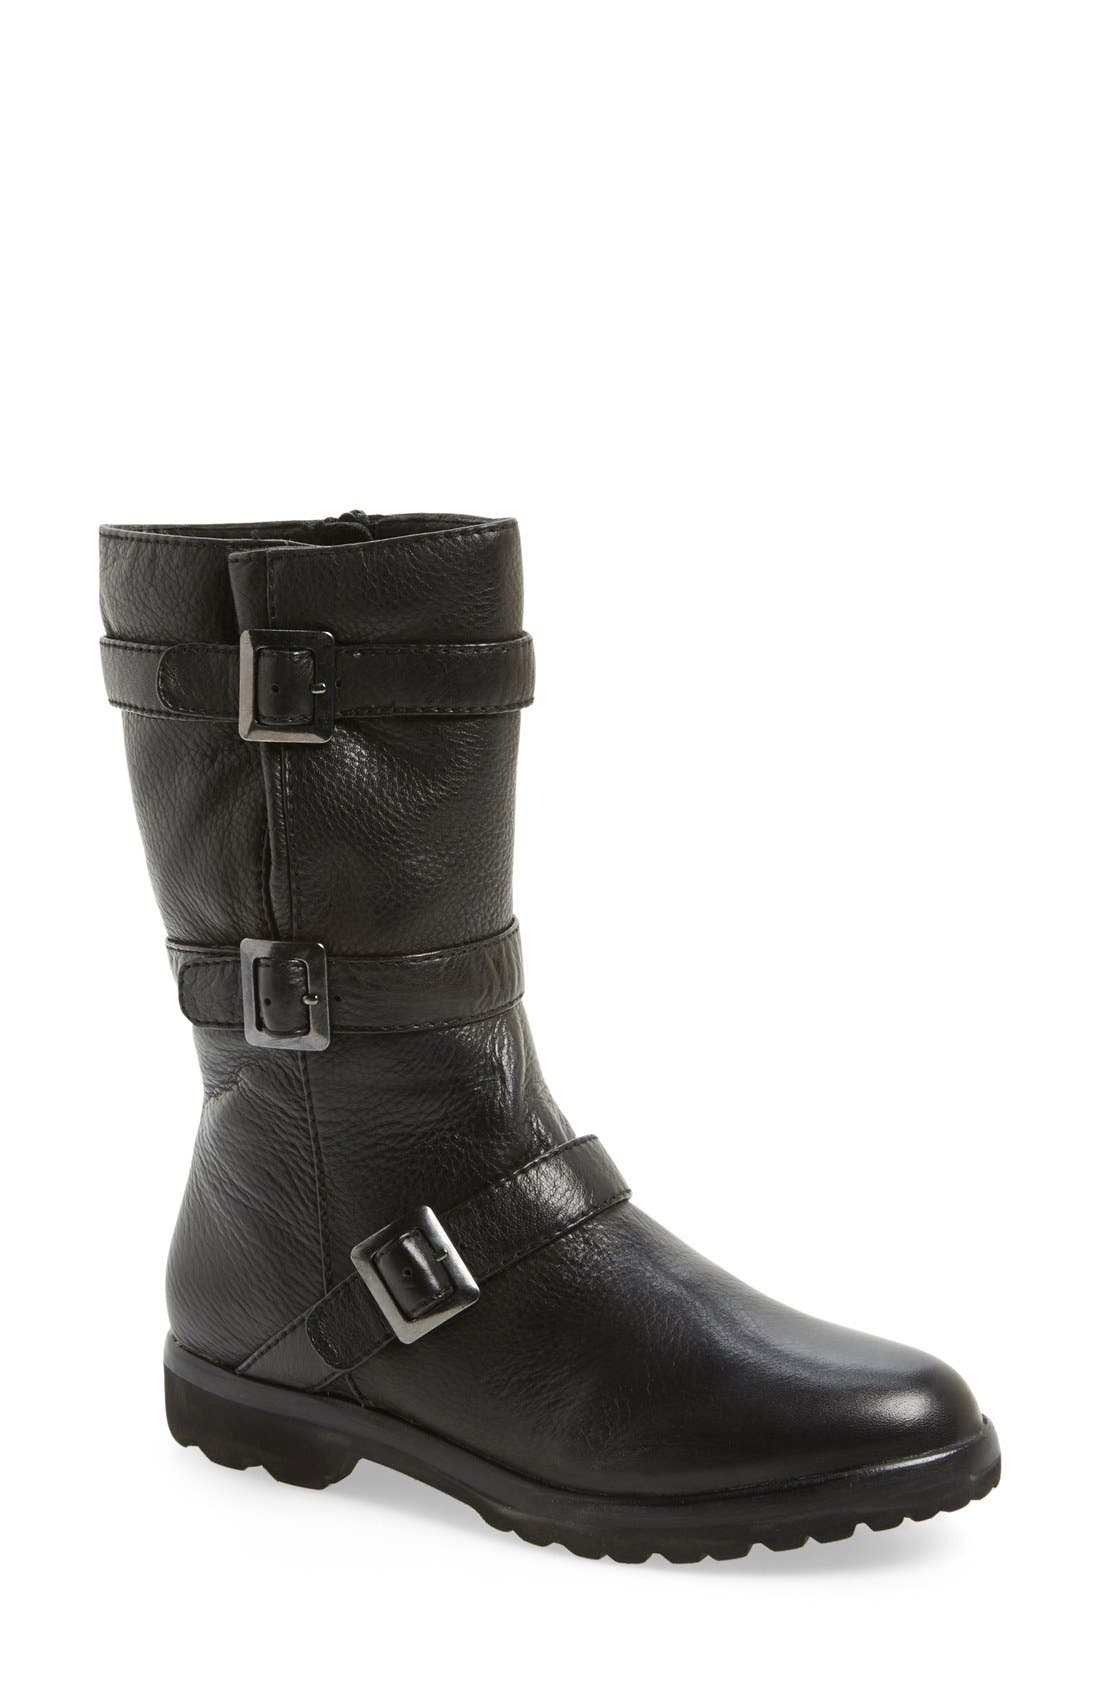 L'Amour Des Pieds 'Racey' Belted Mid Boot,                             Main thumbnail 1, color,                             001